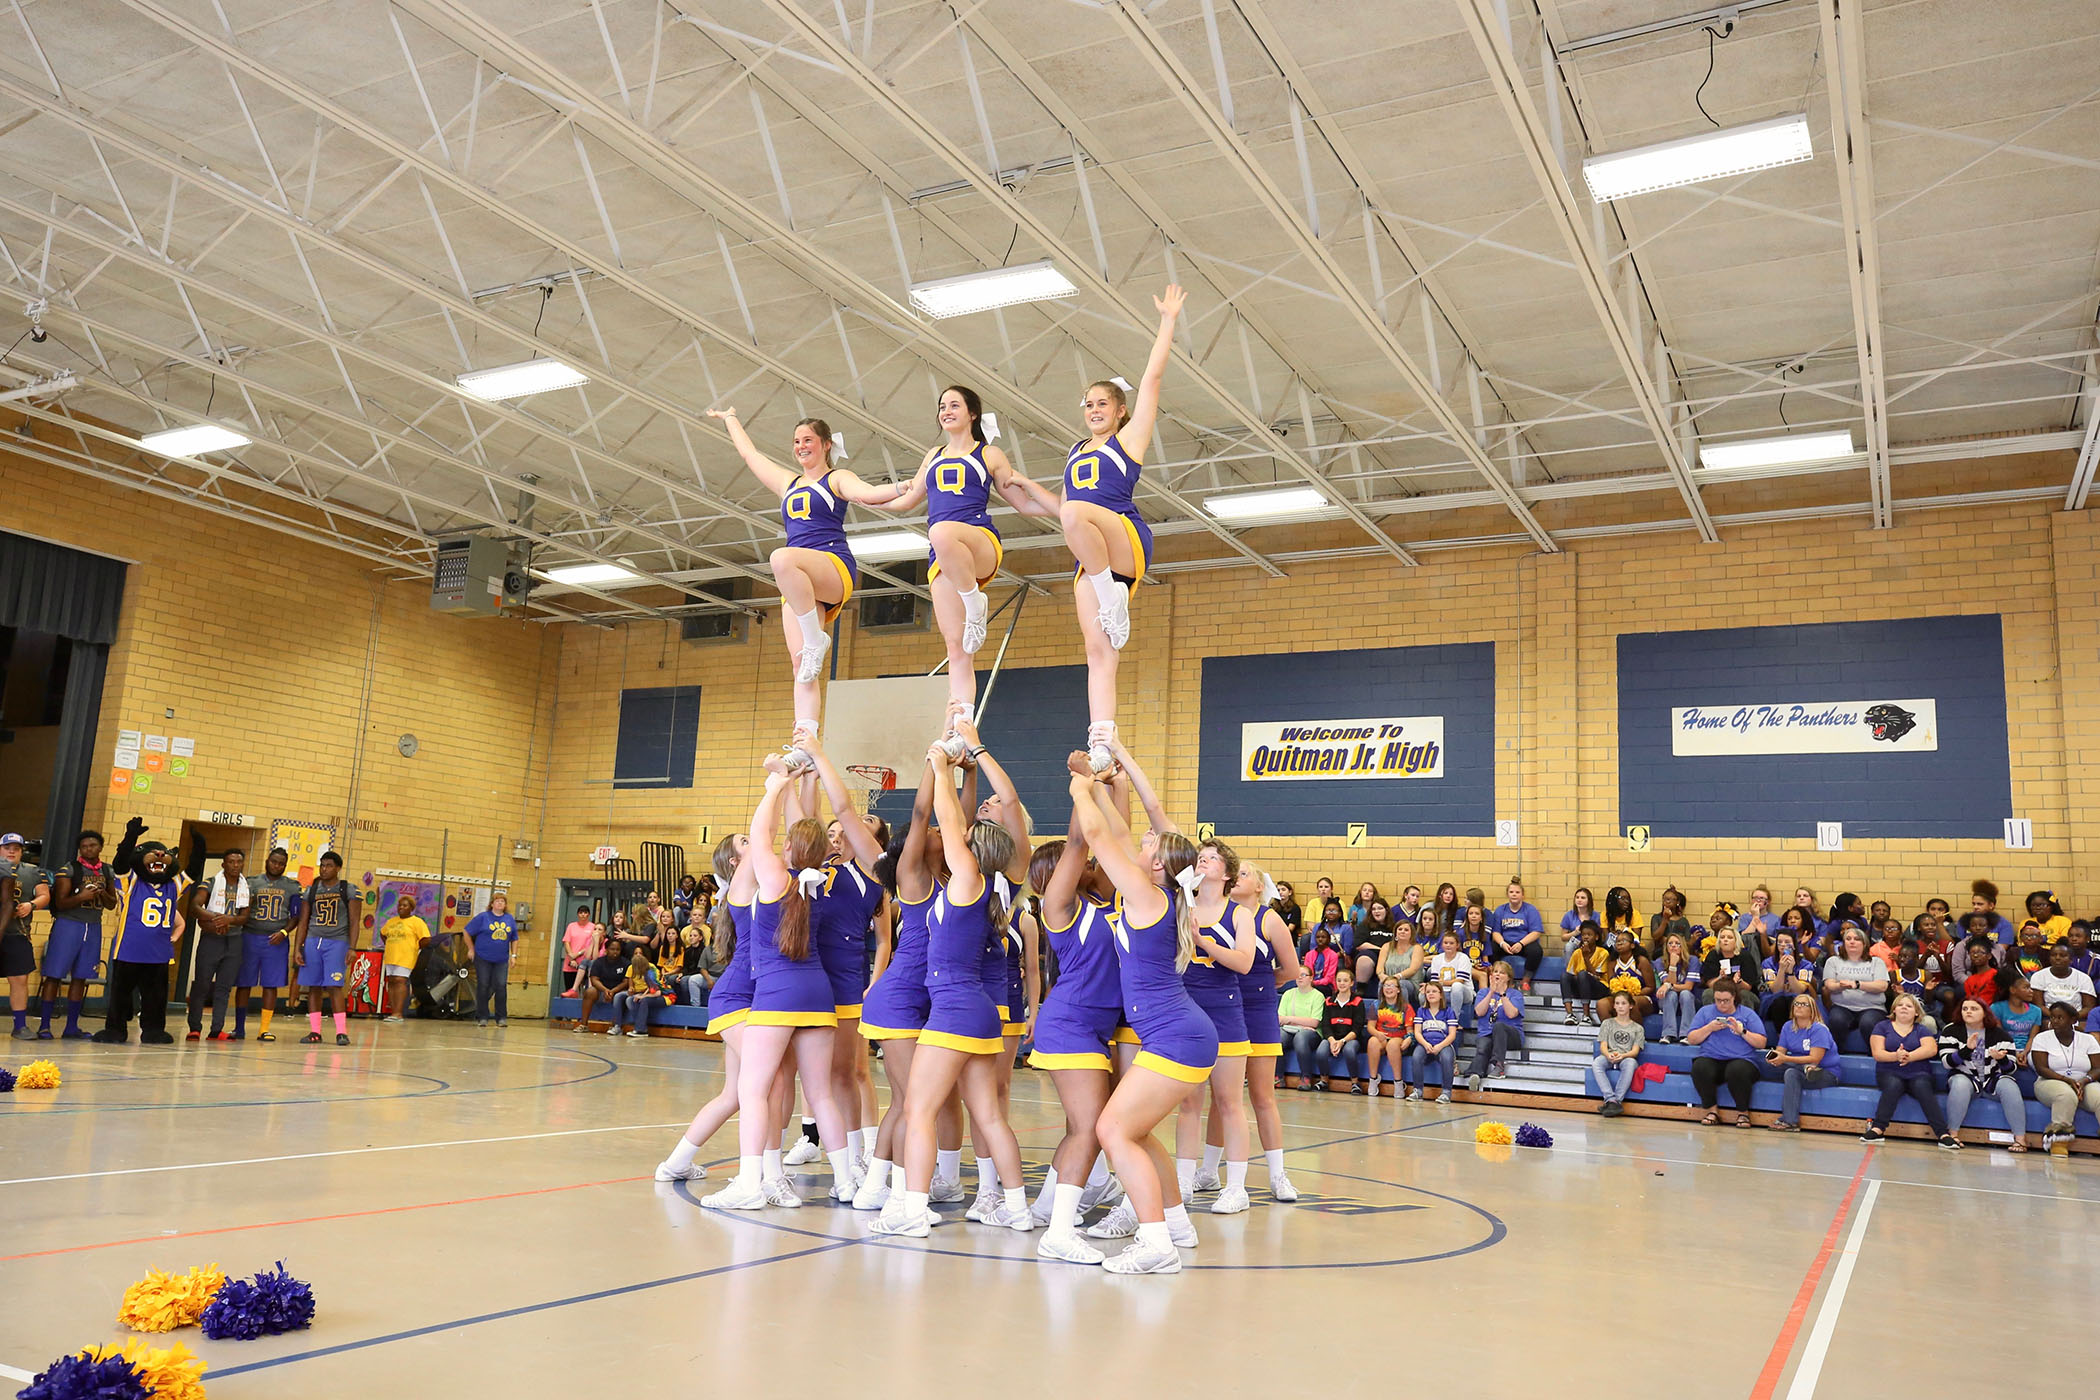 Panther cheerleaders perform at QJH for the 2018 Panther Homecoming.